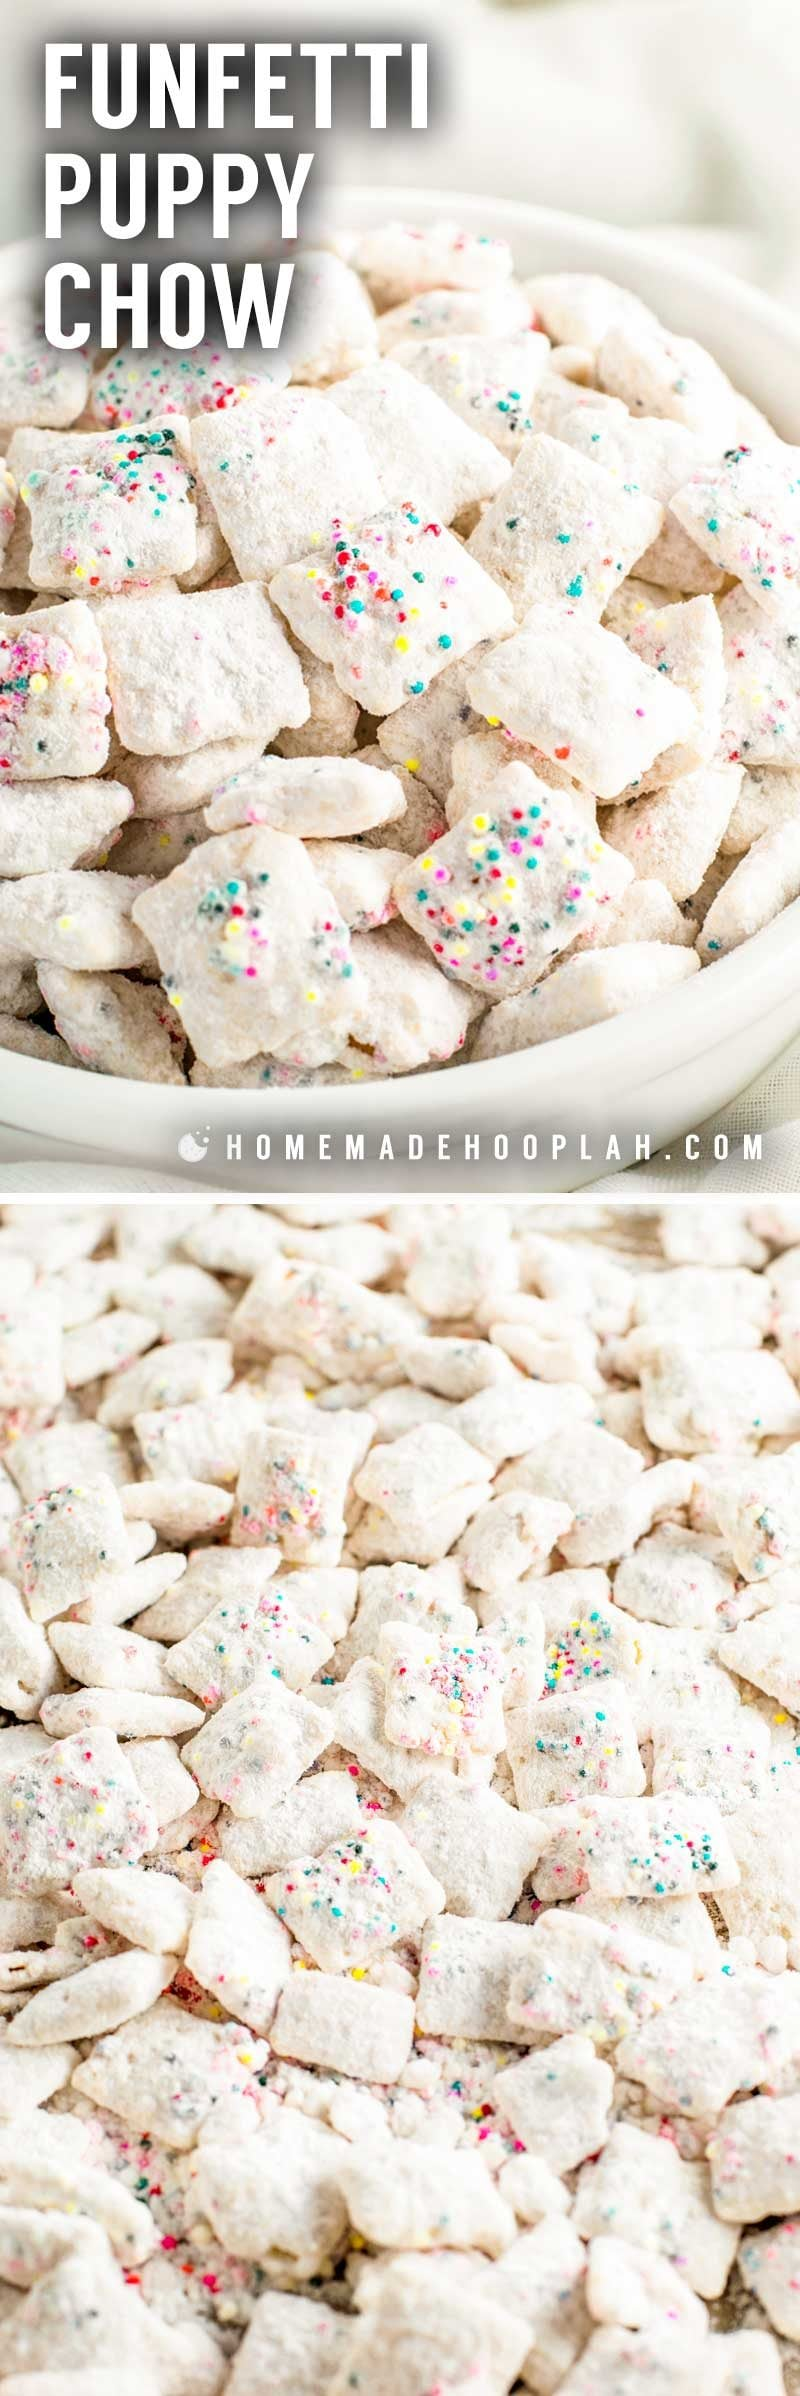 Funfetti Puppy Chow! This classic sweet snack gets a festive makeover with this funfetti puppy chow! Chex cereal is coated in white candy melts, colorful sprinkles, and dusted with a sweetened white cake mix. Perfect for snacking or gifting! | HomemadeHooplah.com